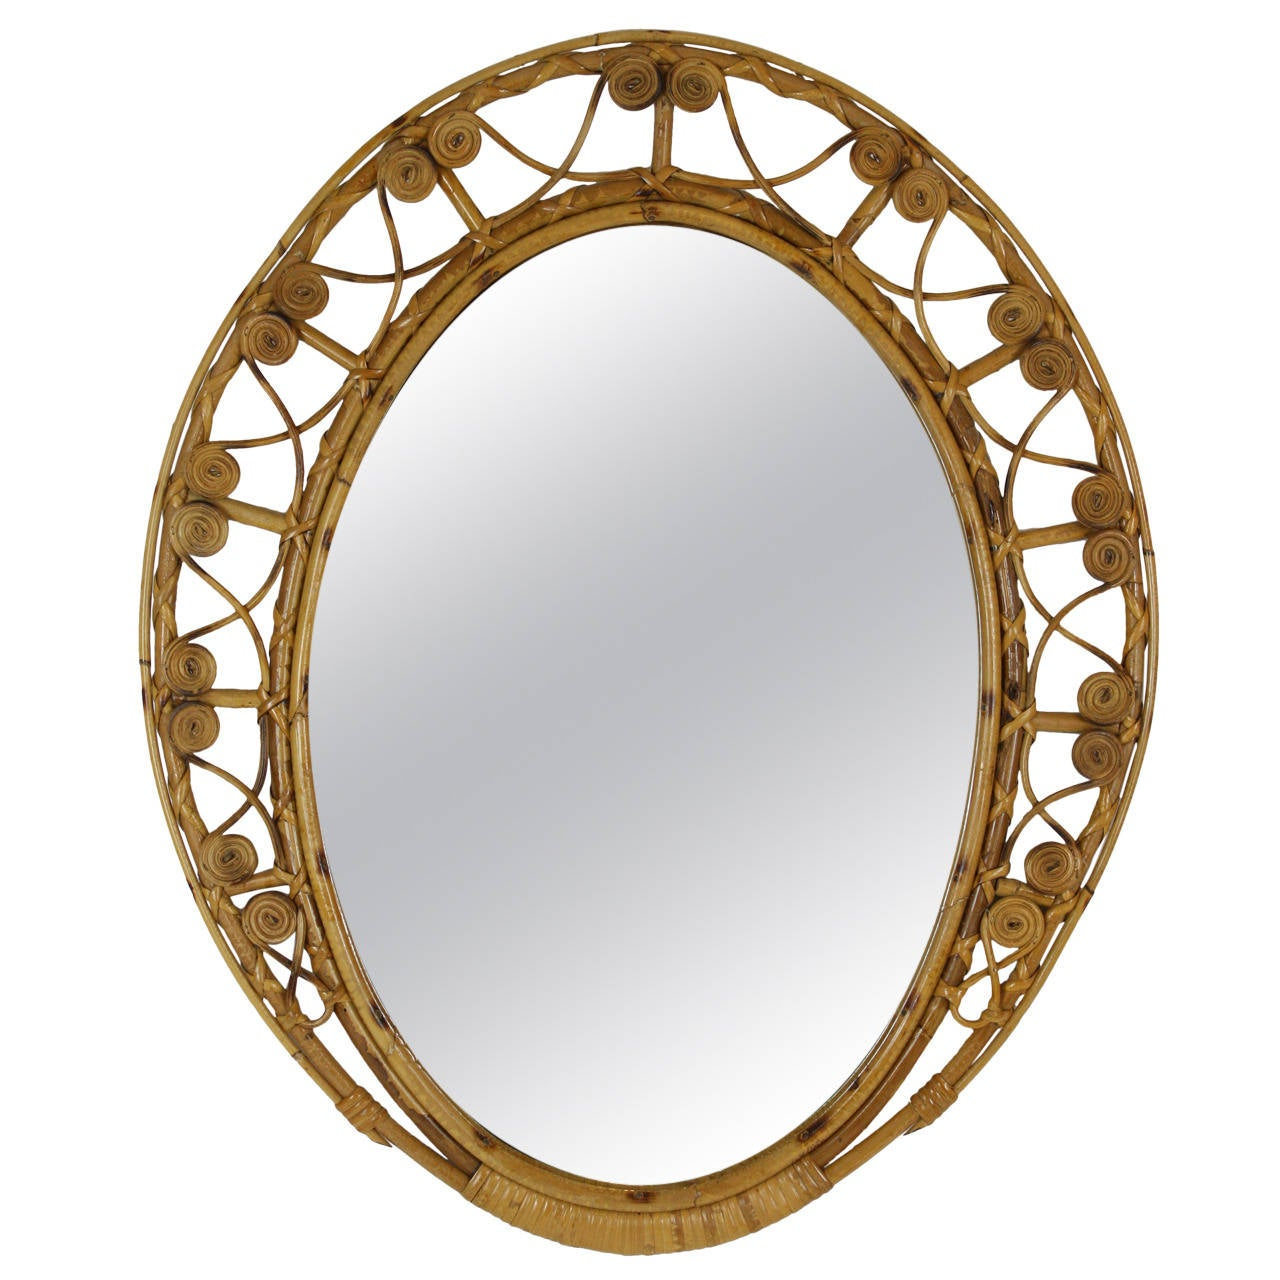 spanish 1950s bamboo and wicker oval mirror with filigree frame 1